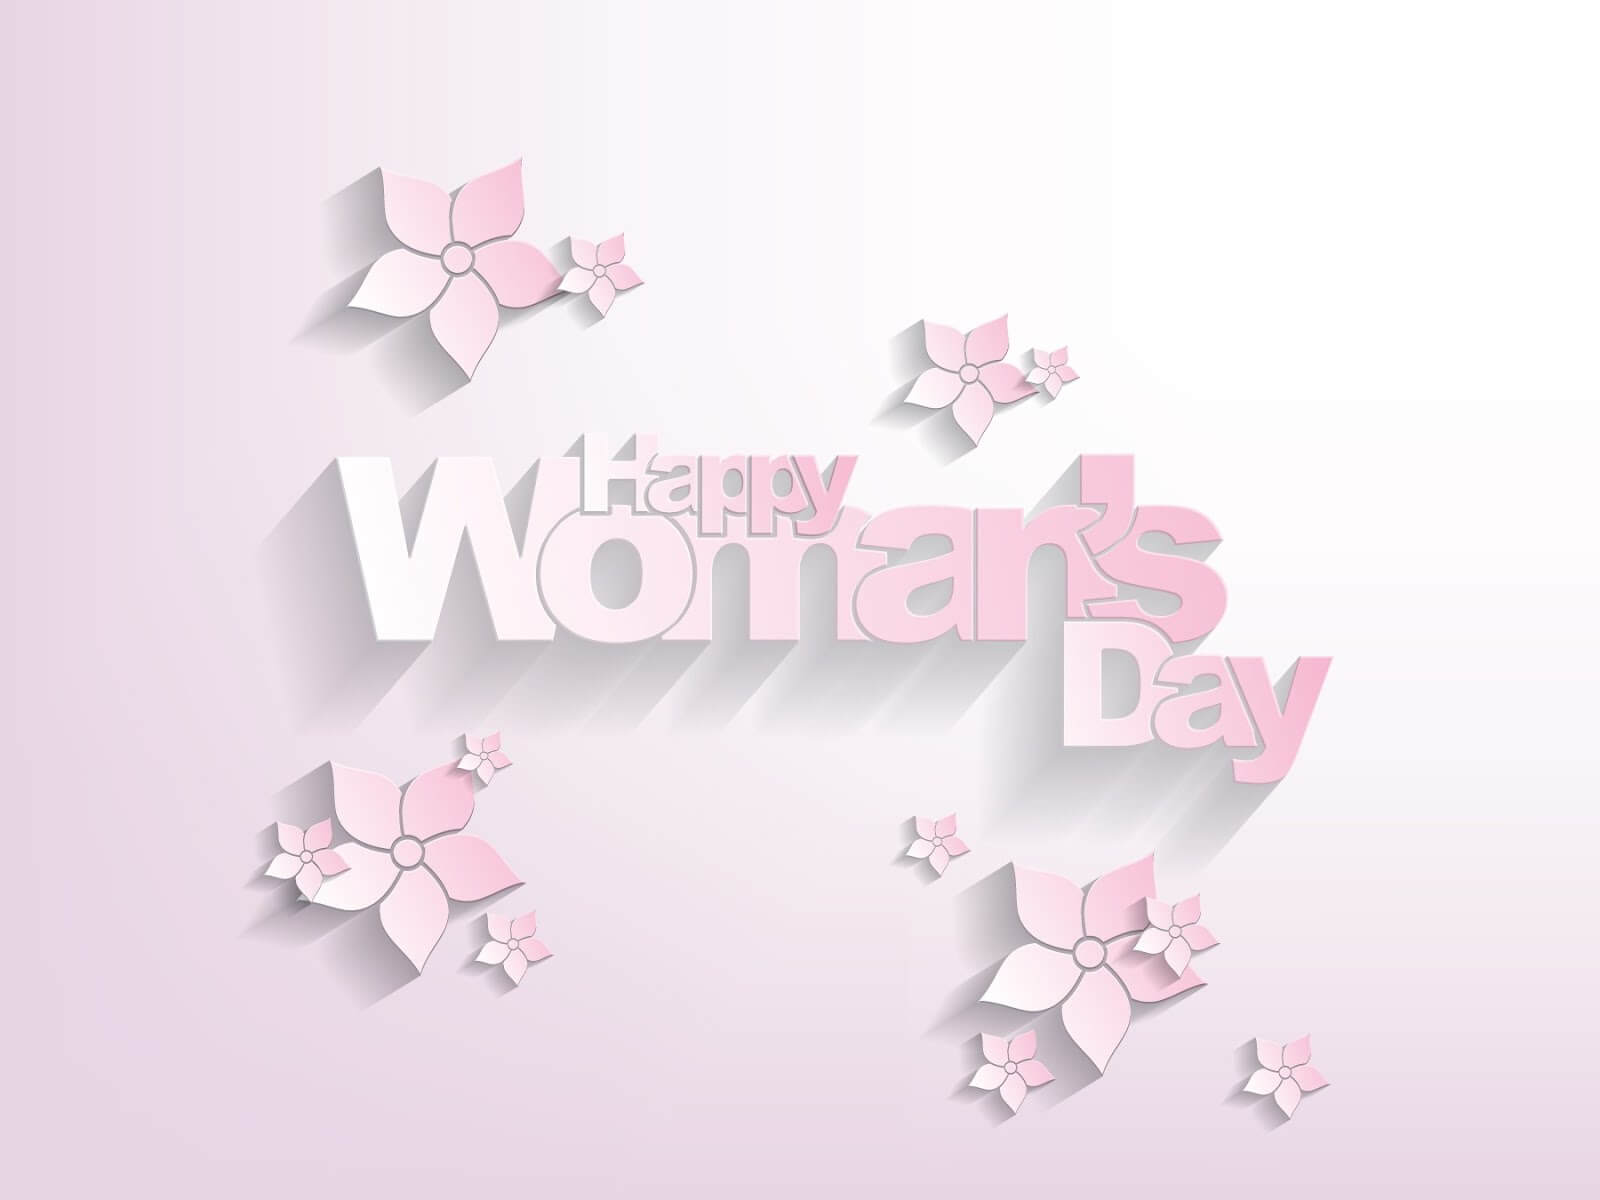 happy womans day flowers on pink background wallpaper